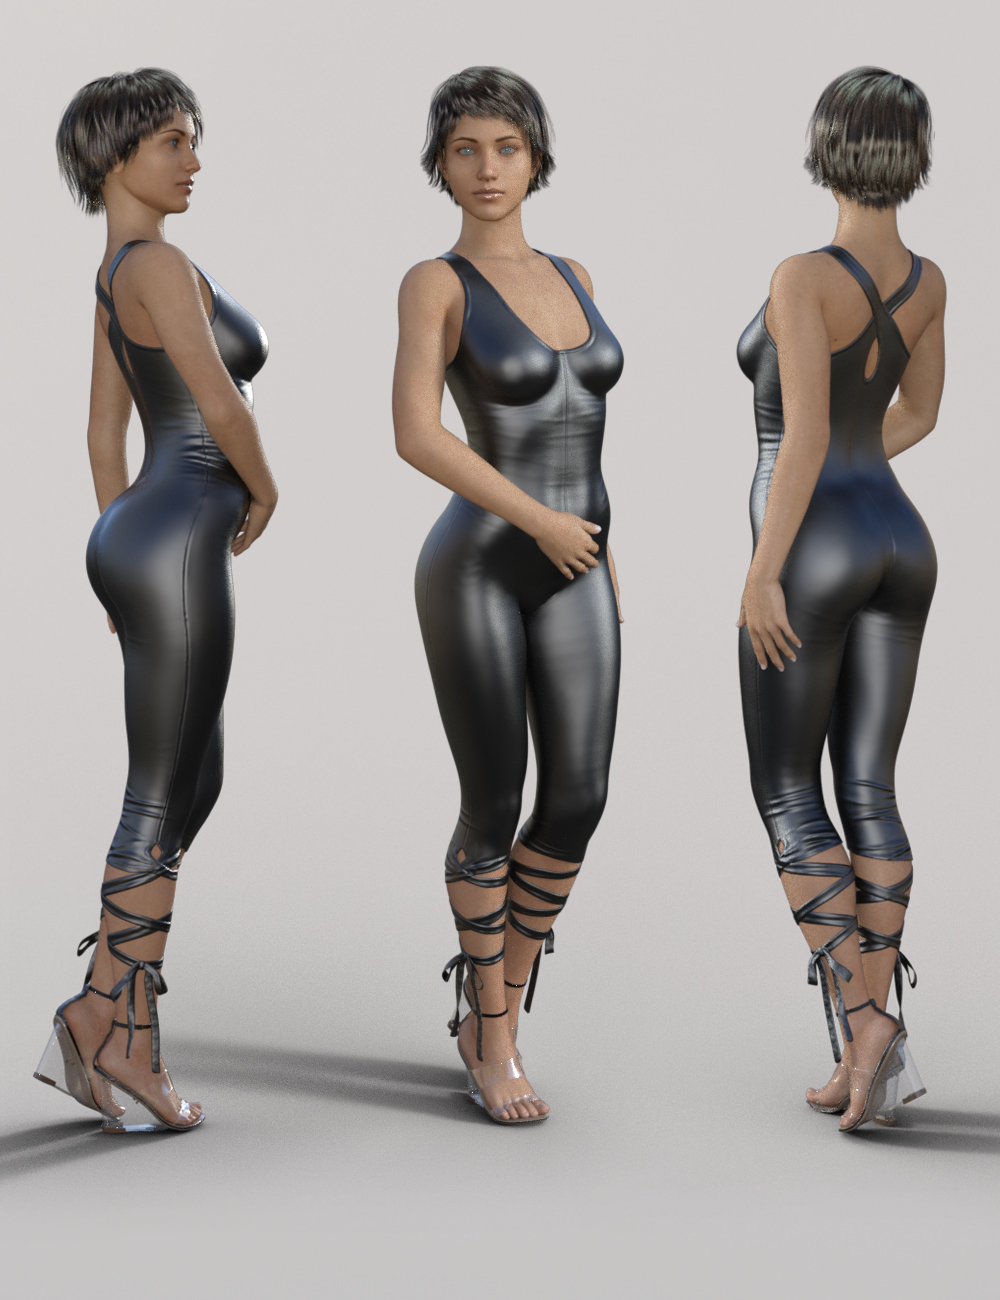 Skinny Jumpsuit and Heeled Sandal for Genesis 8 Female(s) by: fjaa3d, 3D Models by Daz 3D